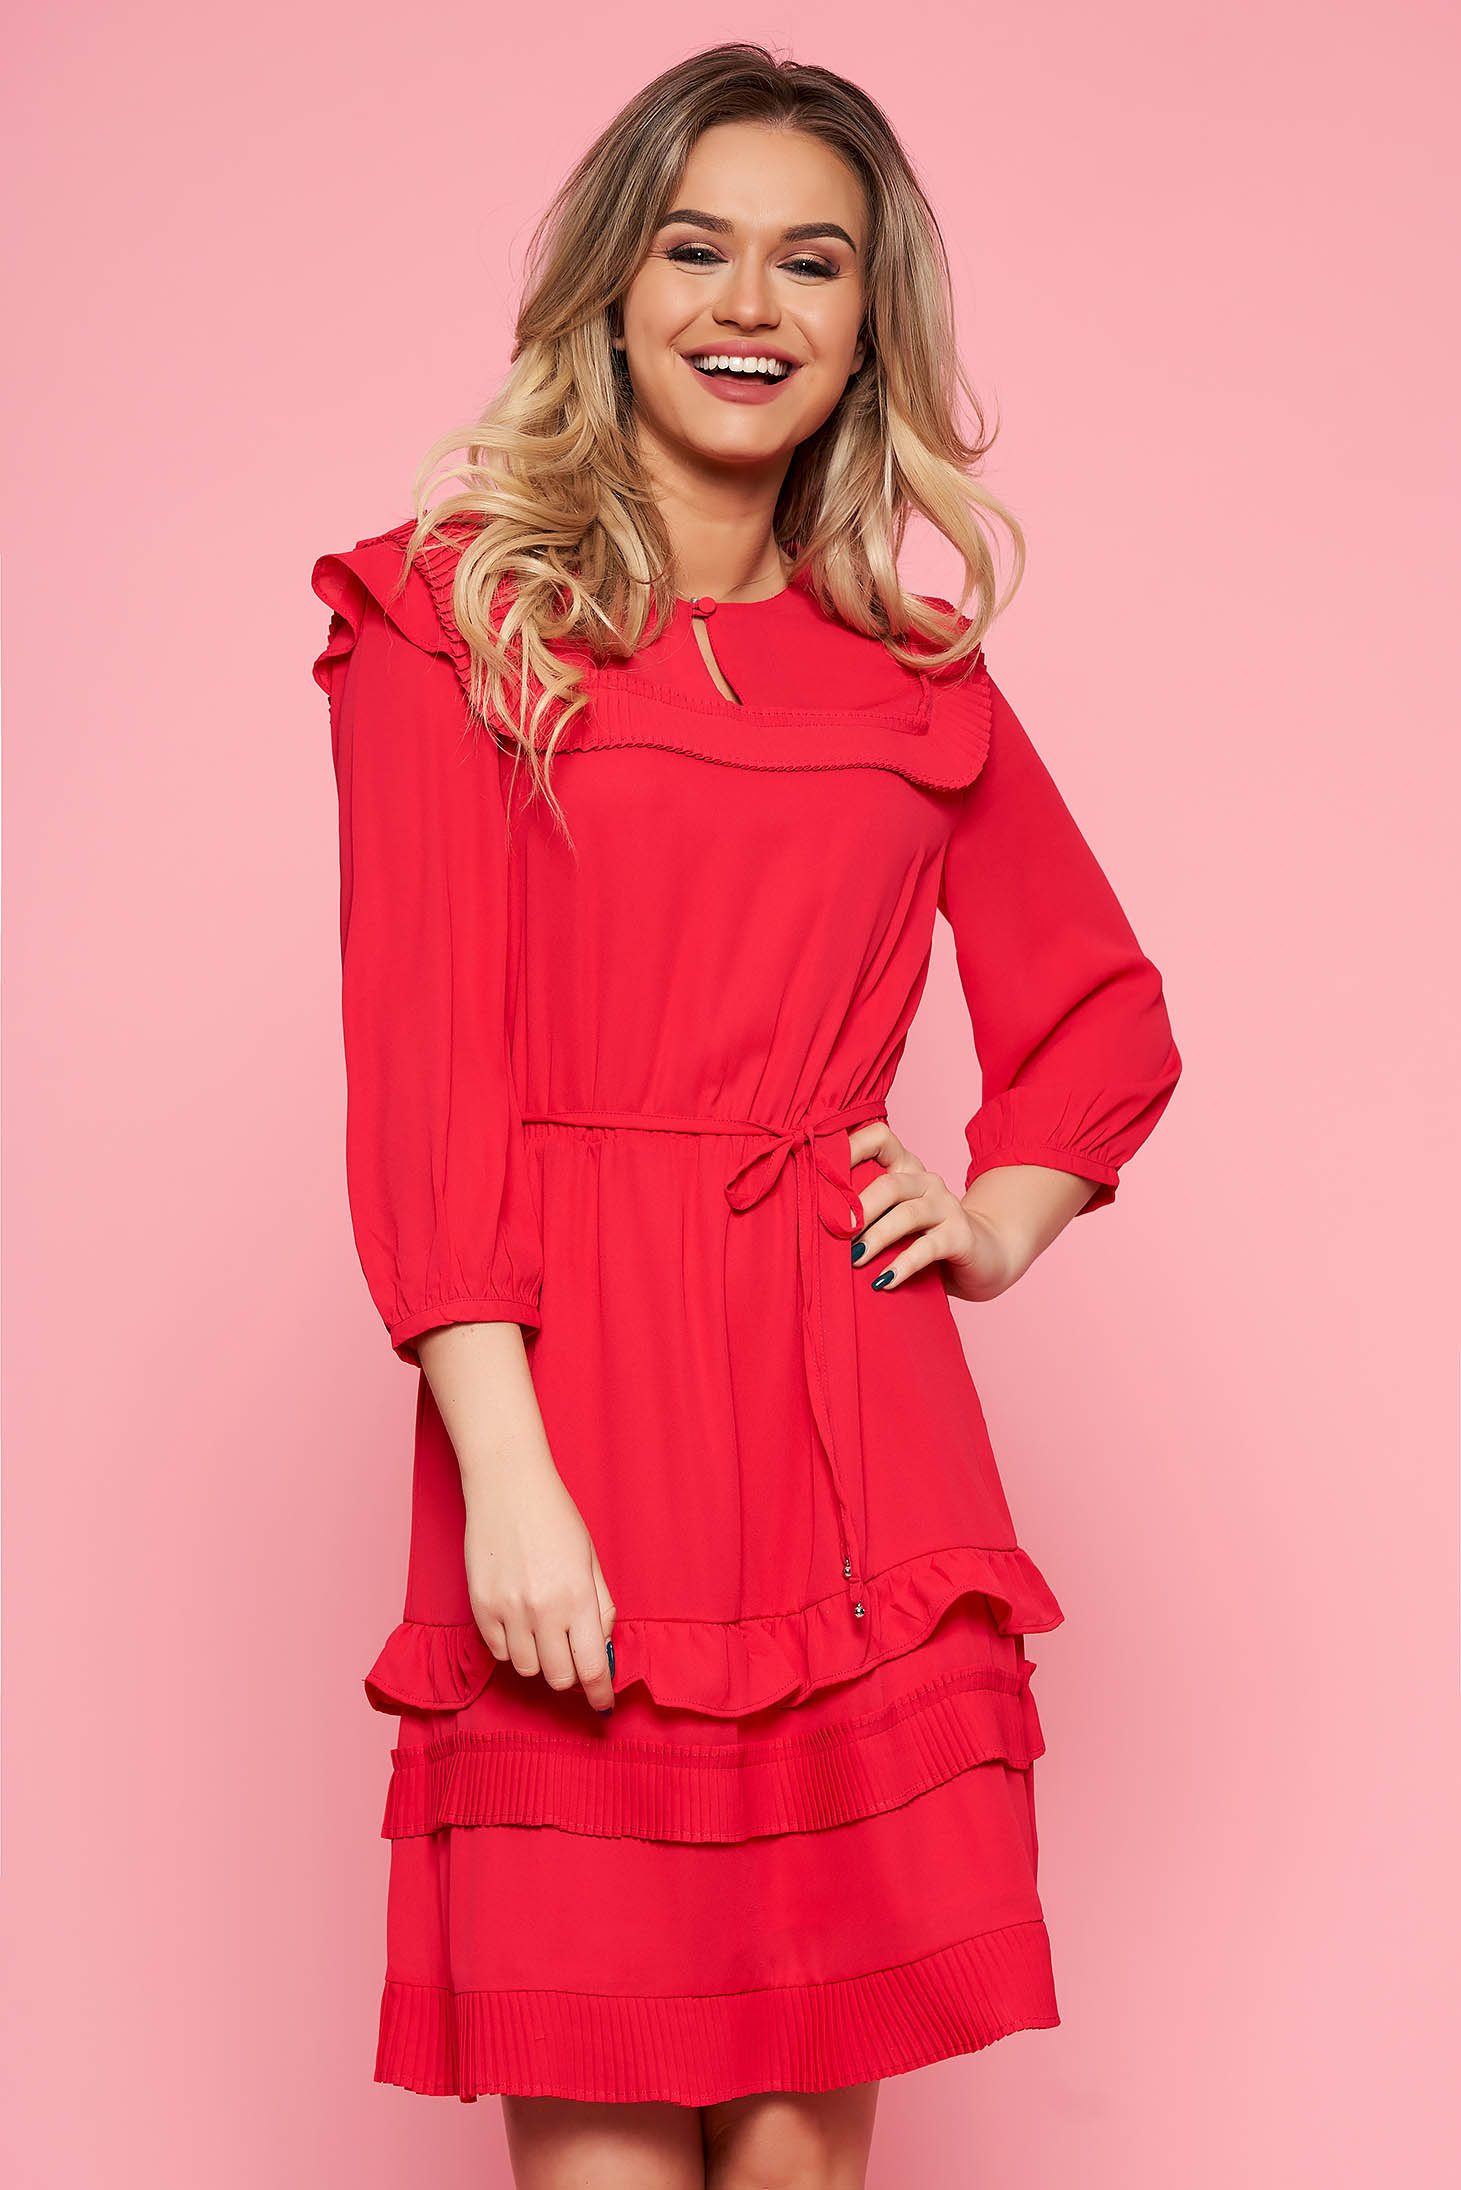 Top Secret darkpink daily cloche dress with 3/4 sleeves is fastened around the waist with a ribbon